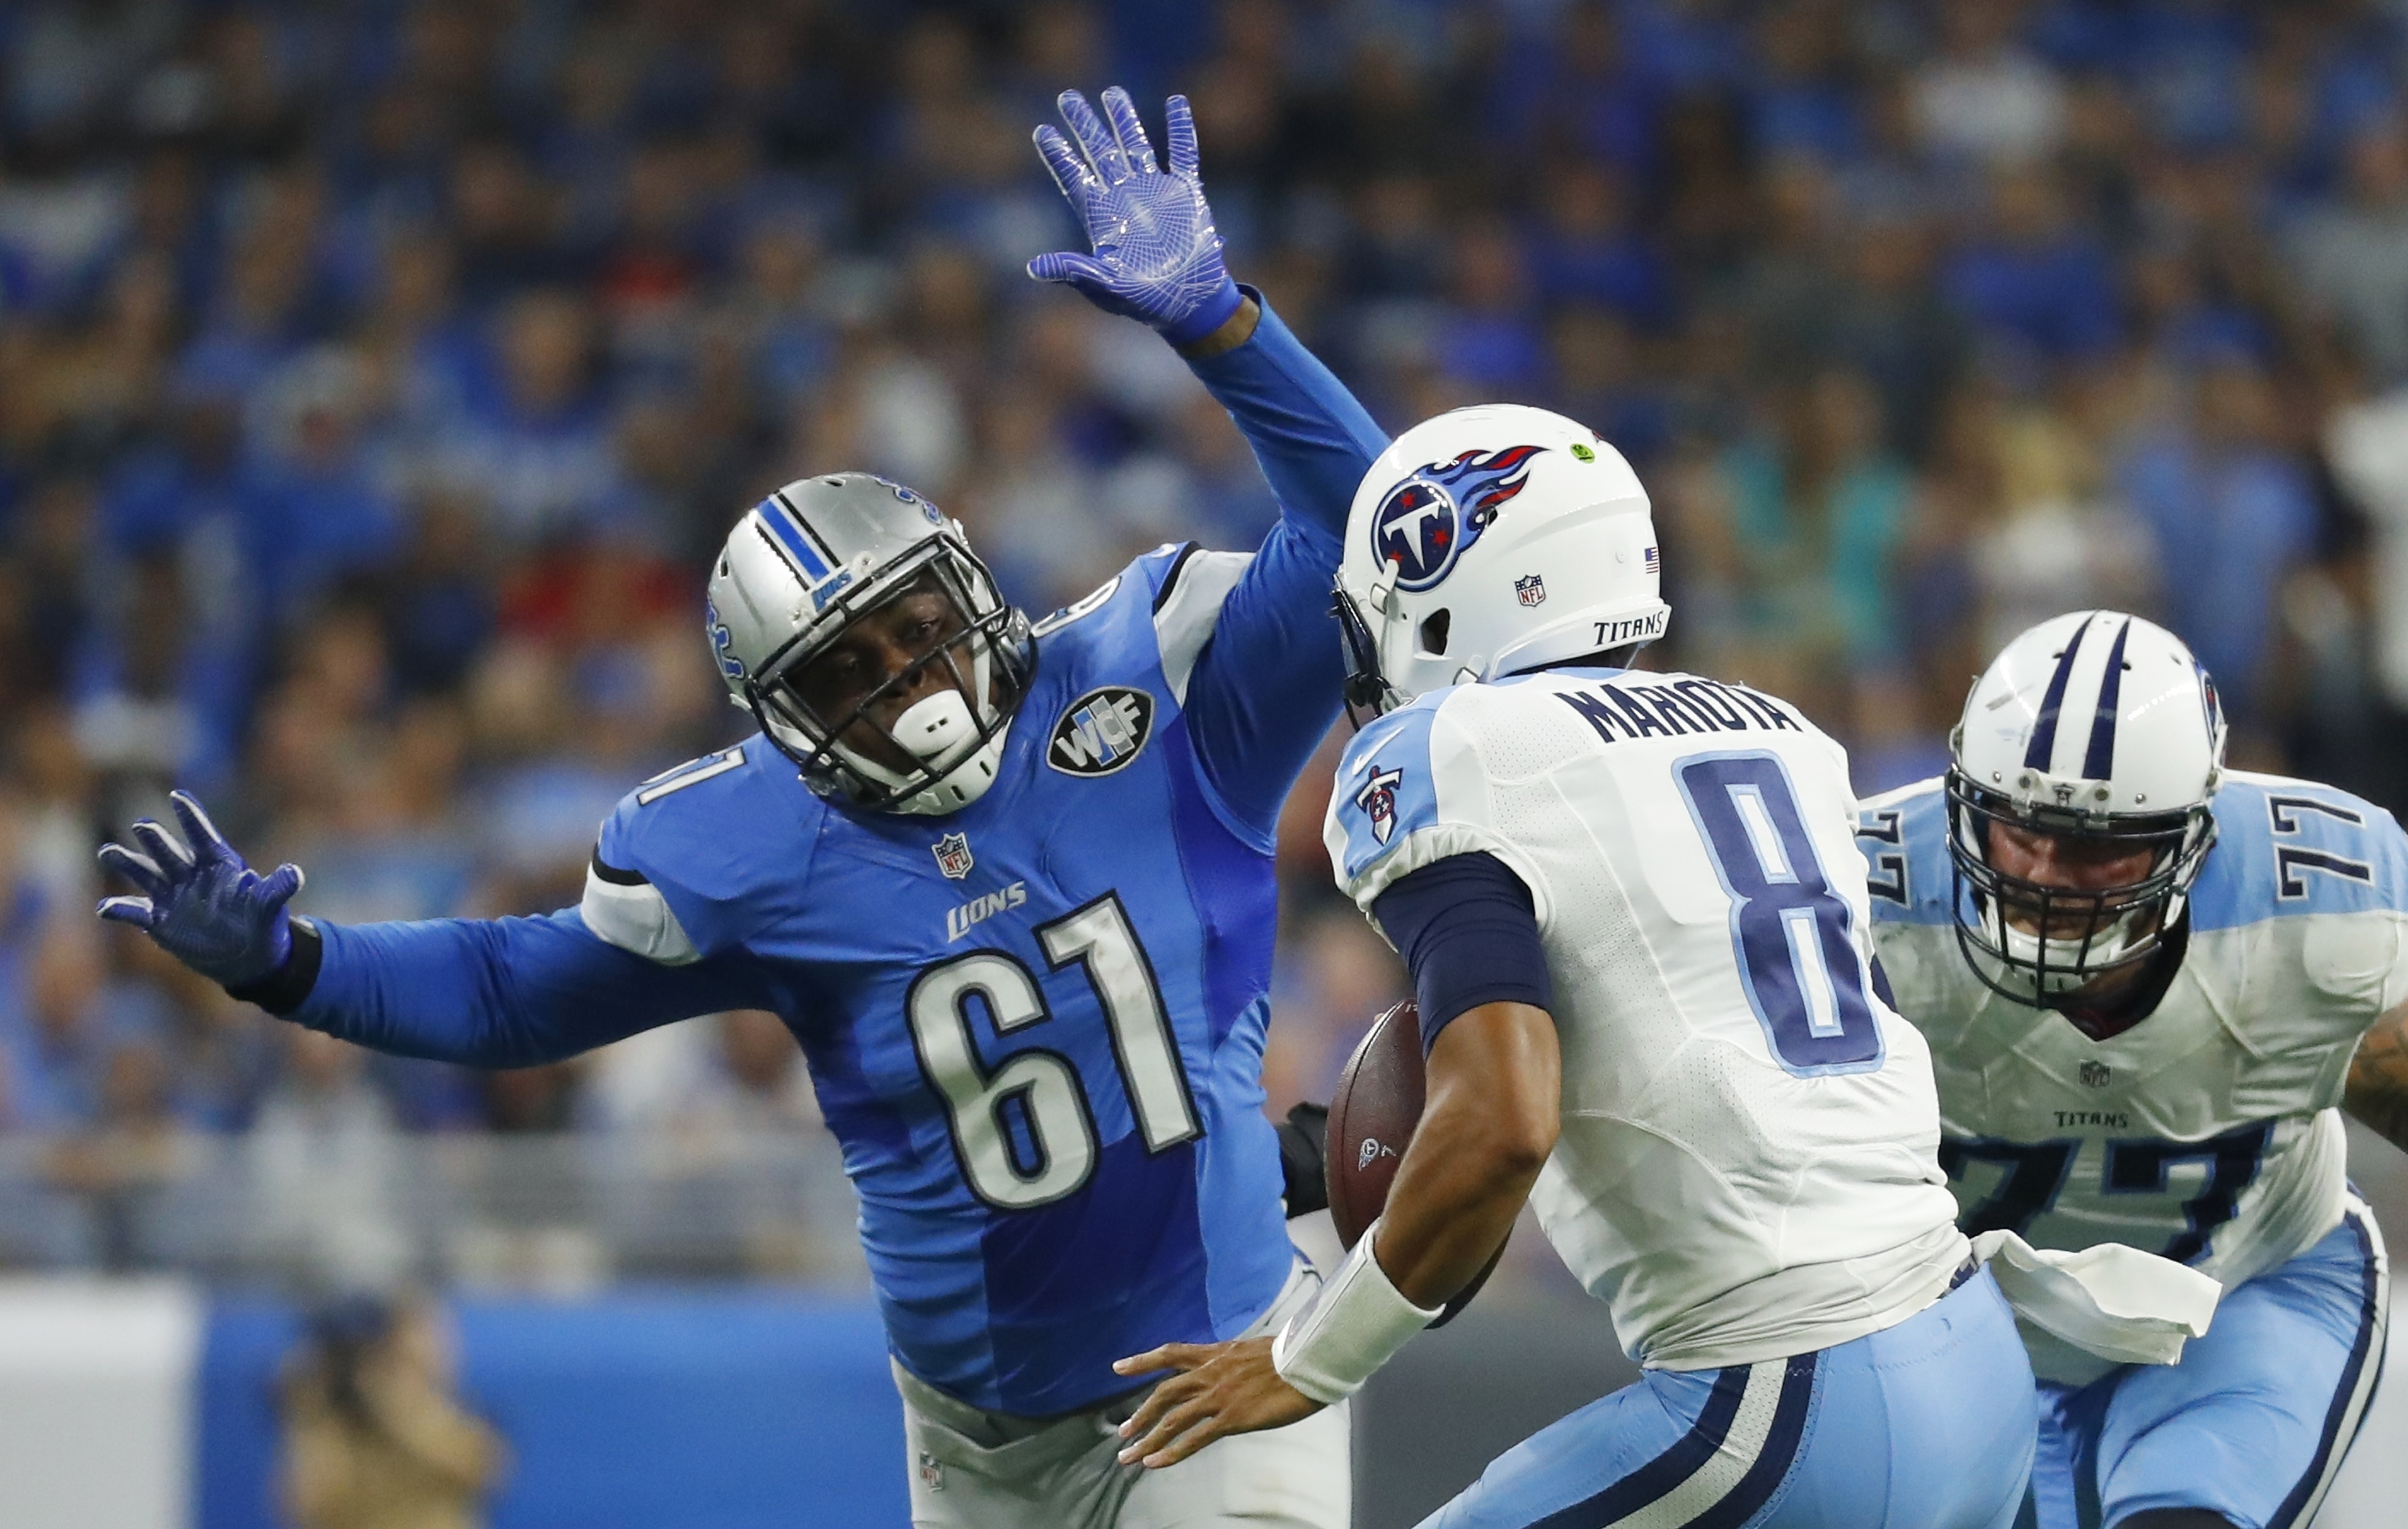 Detroit Lions defensive end Kerry Hyder (61) chases Tennessee Titans quarterback Marcus Mariota (8) during the first half of an NFL football game, Sunday, Sept. 18, 2016, in Detroit. (AP Photo/Paul Sancya)